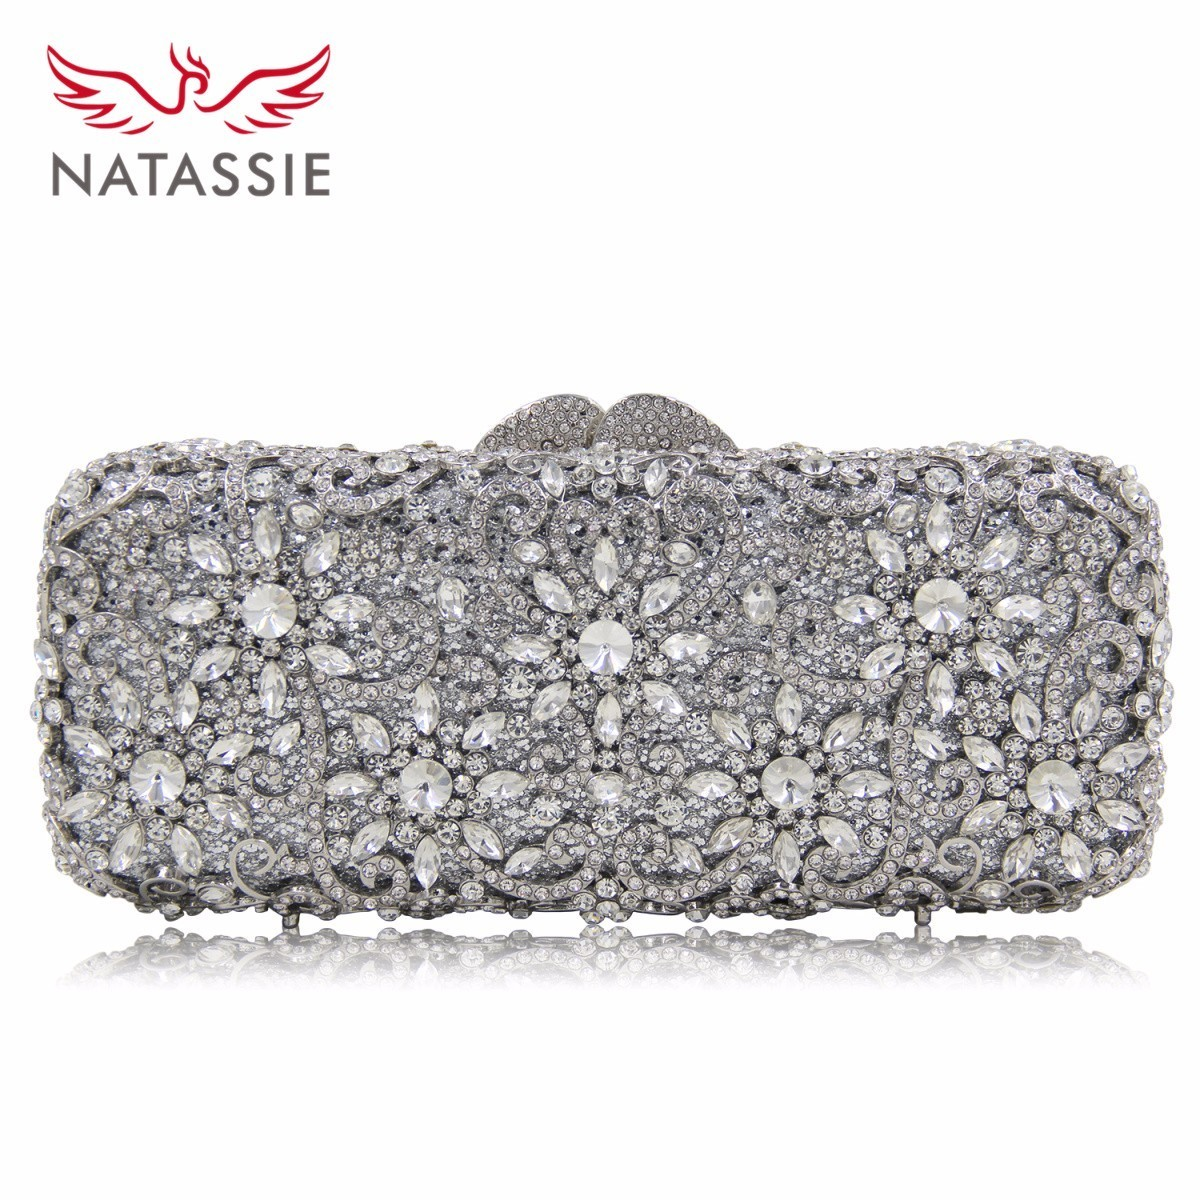 Natassie New Design Luxury Flower Crystal Women Bag Dinner Banquet Evening Bags Ladies Wedding Day Clutches Party Purses natassie 2018 new women clutch luxury evening bags ladies crystal wedding purses dinner party bag